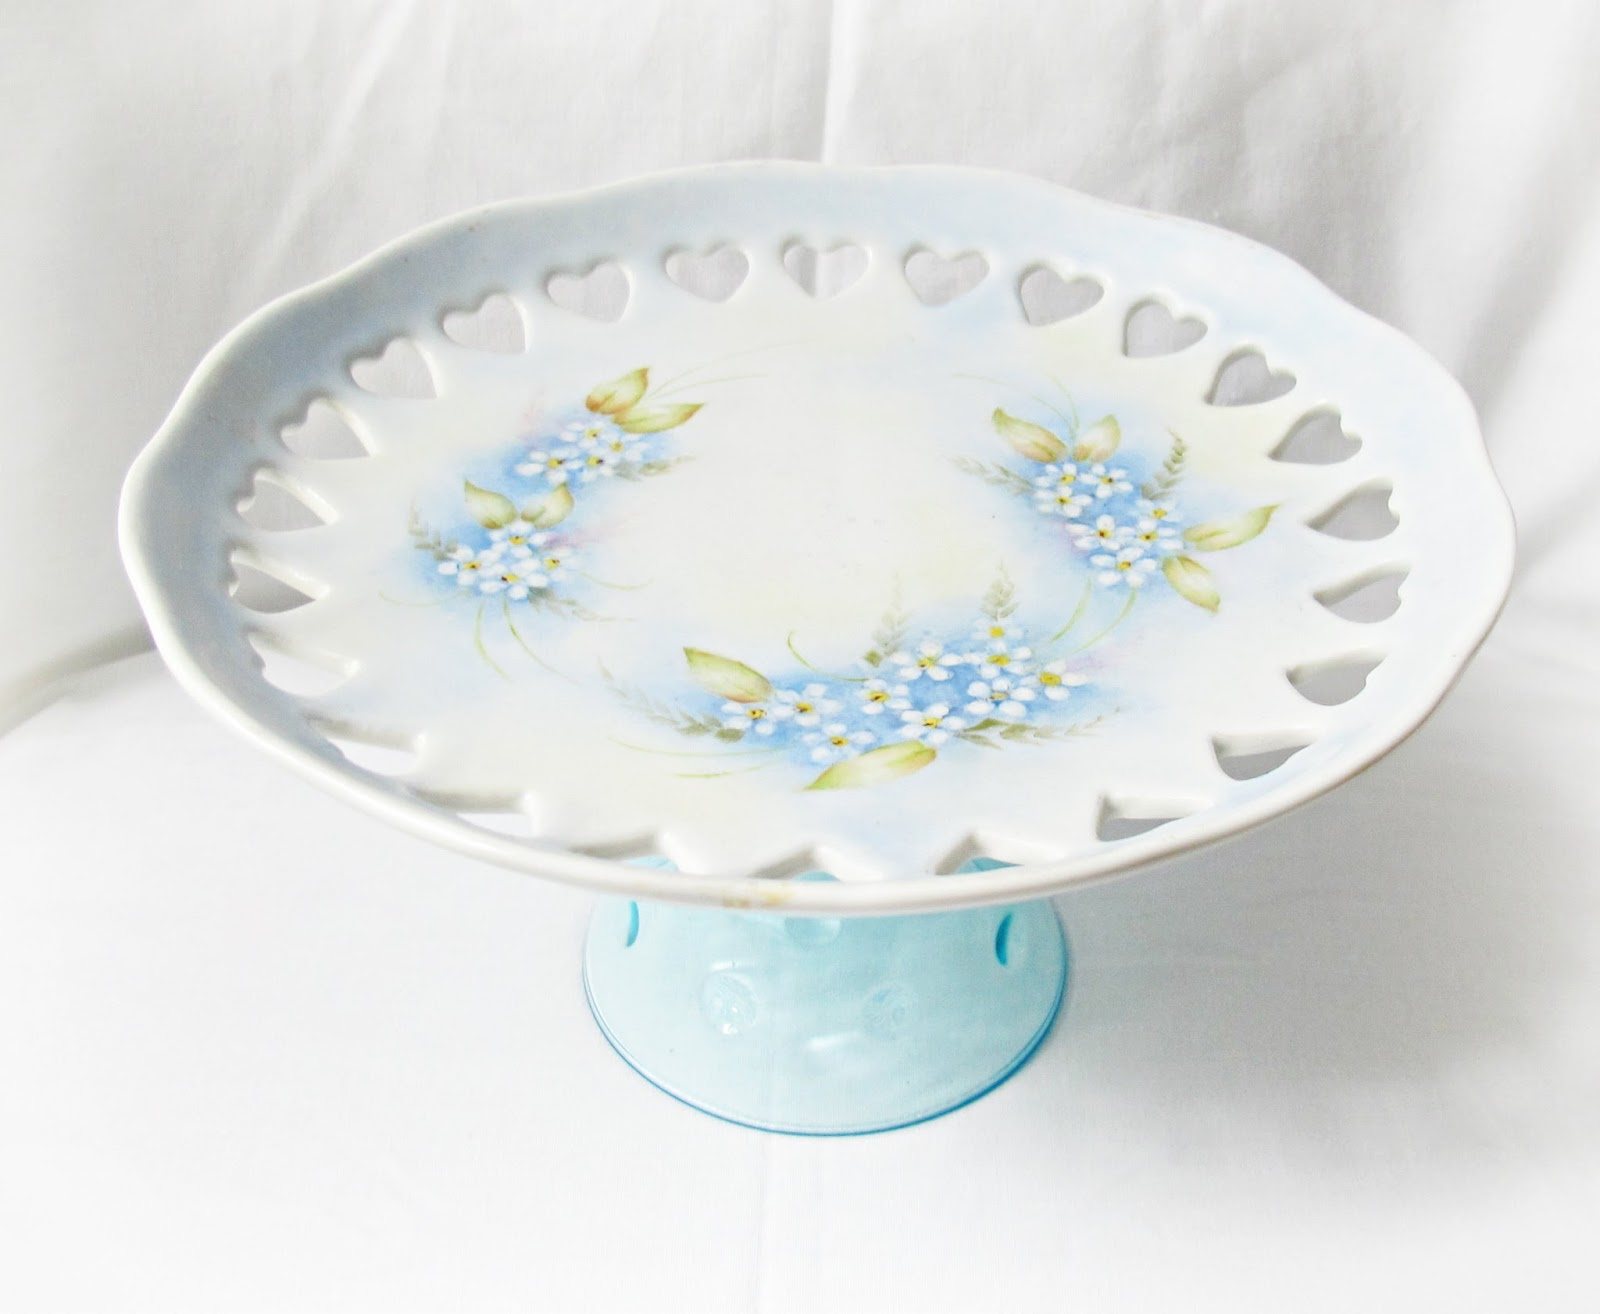 image forget me not hand painted handpainted domum vindemia cake stand dessert blue hearts wedding